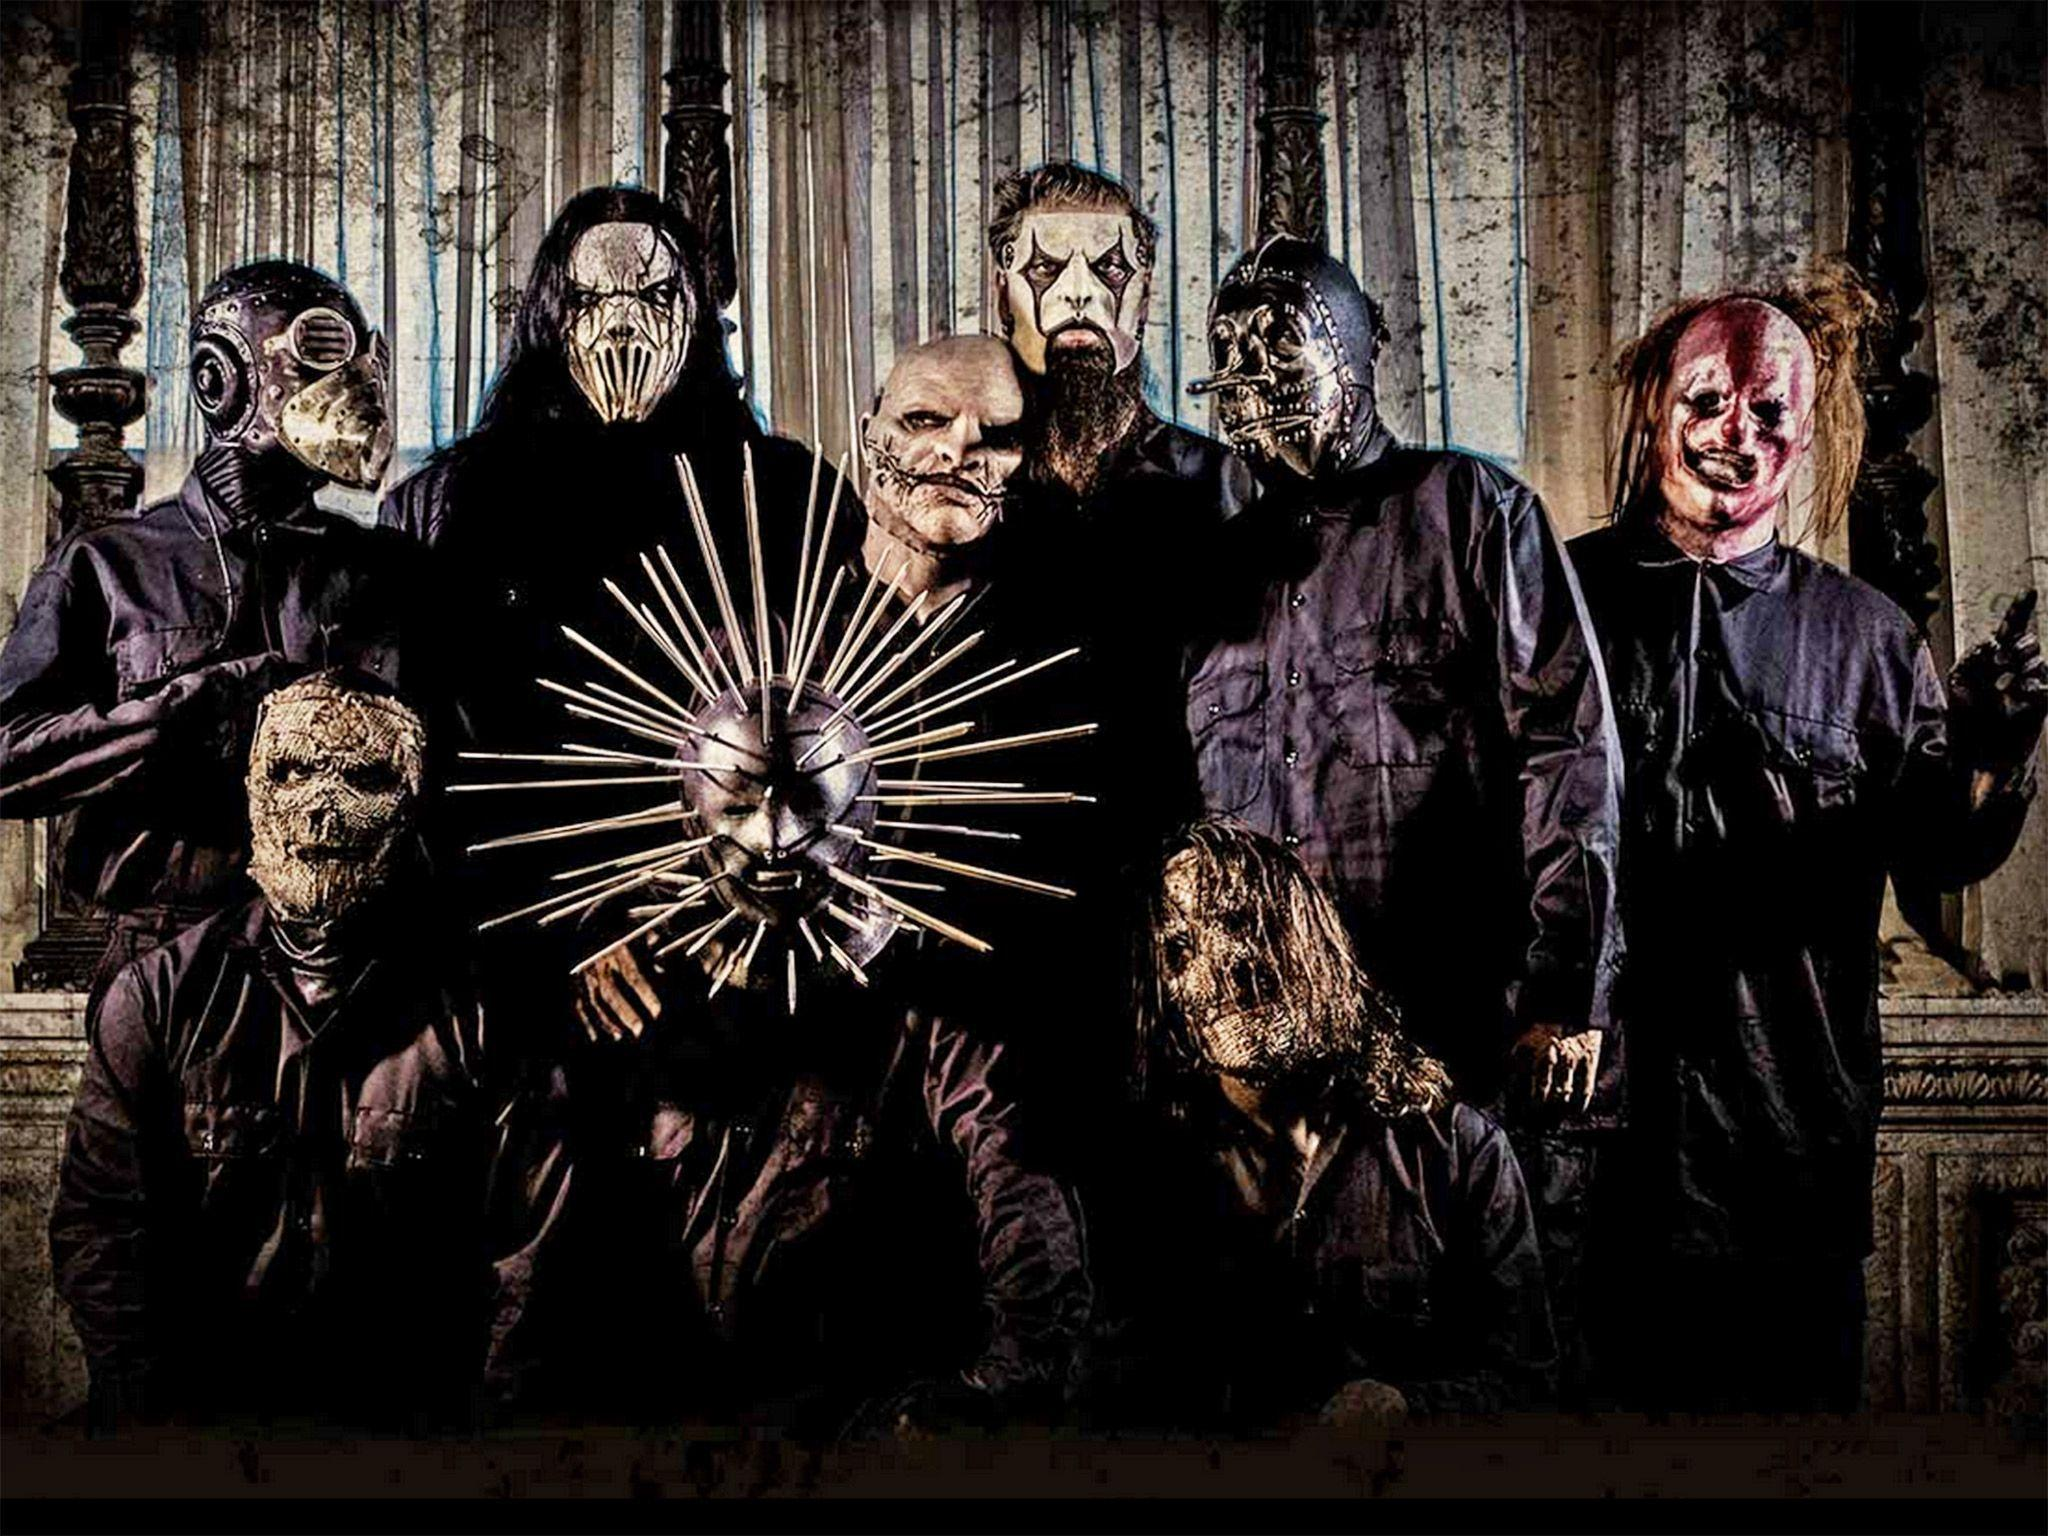 Slipknot Wallpapers 2017 - Wallpaper Cave